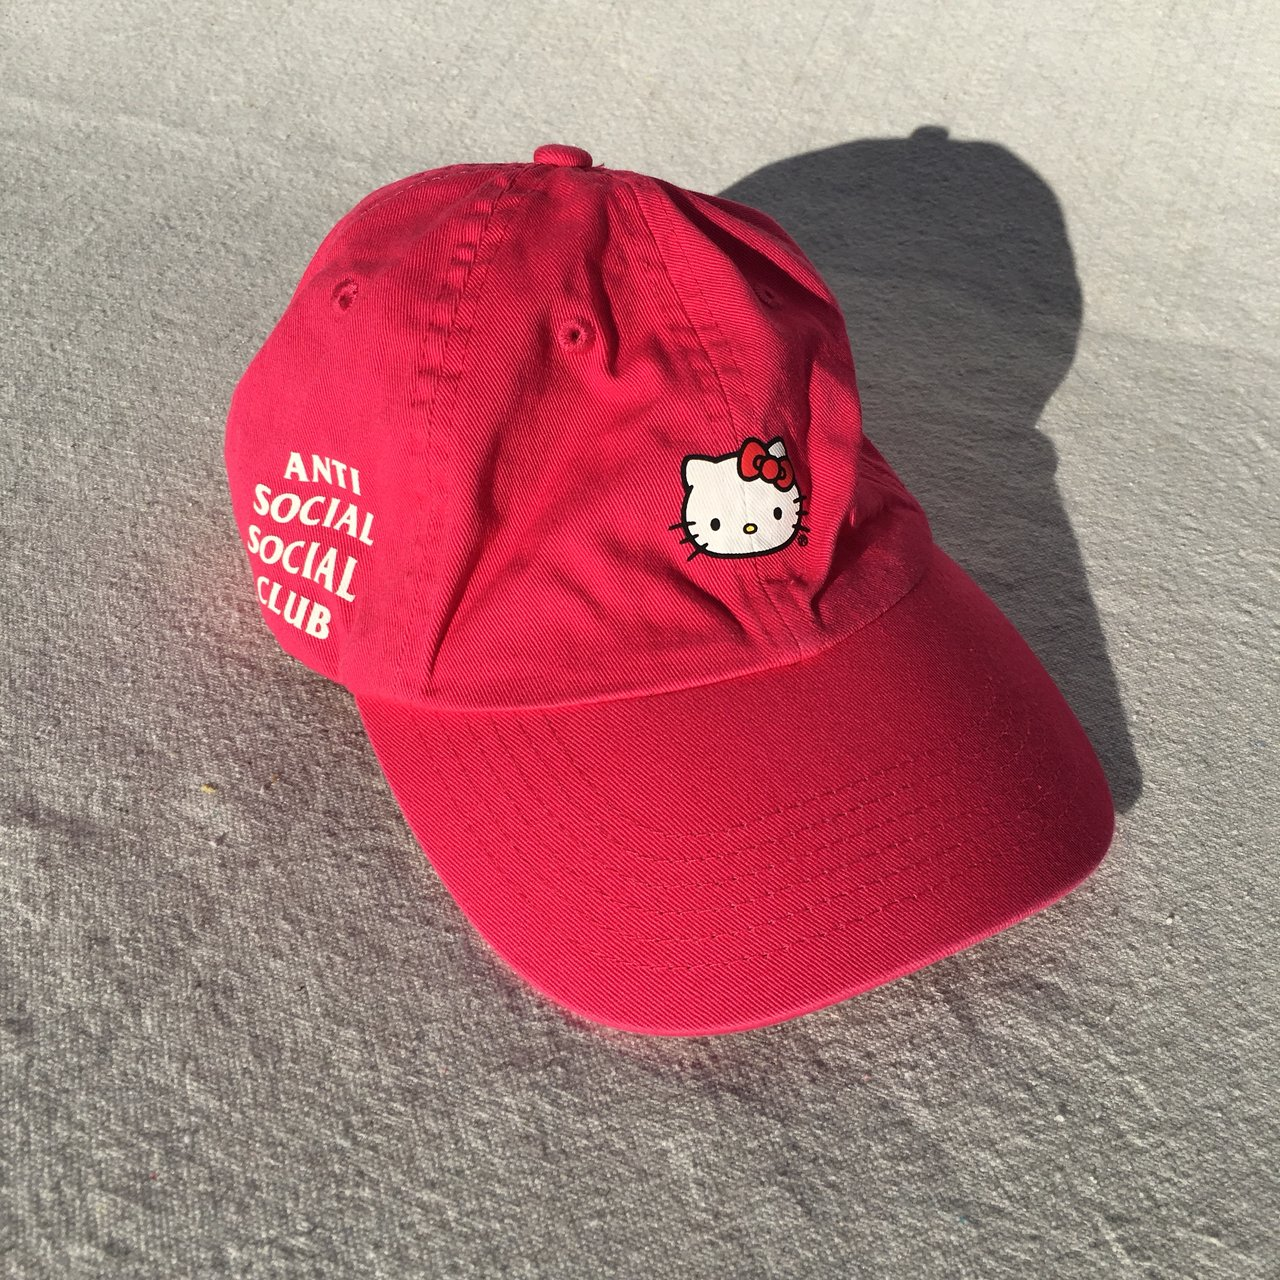 ASSC. Blocked Black Dad Cap 06f2f9332ed9